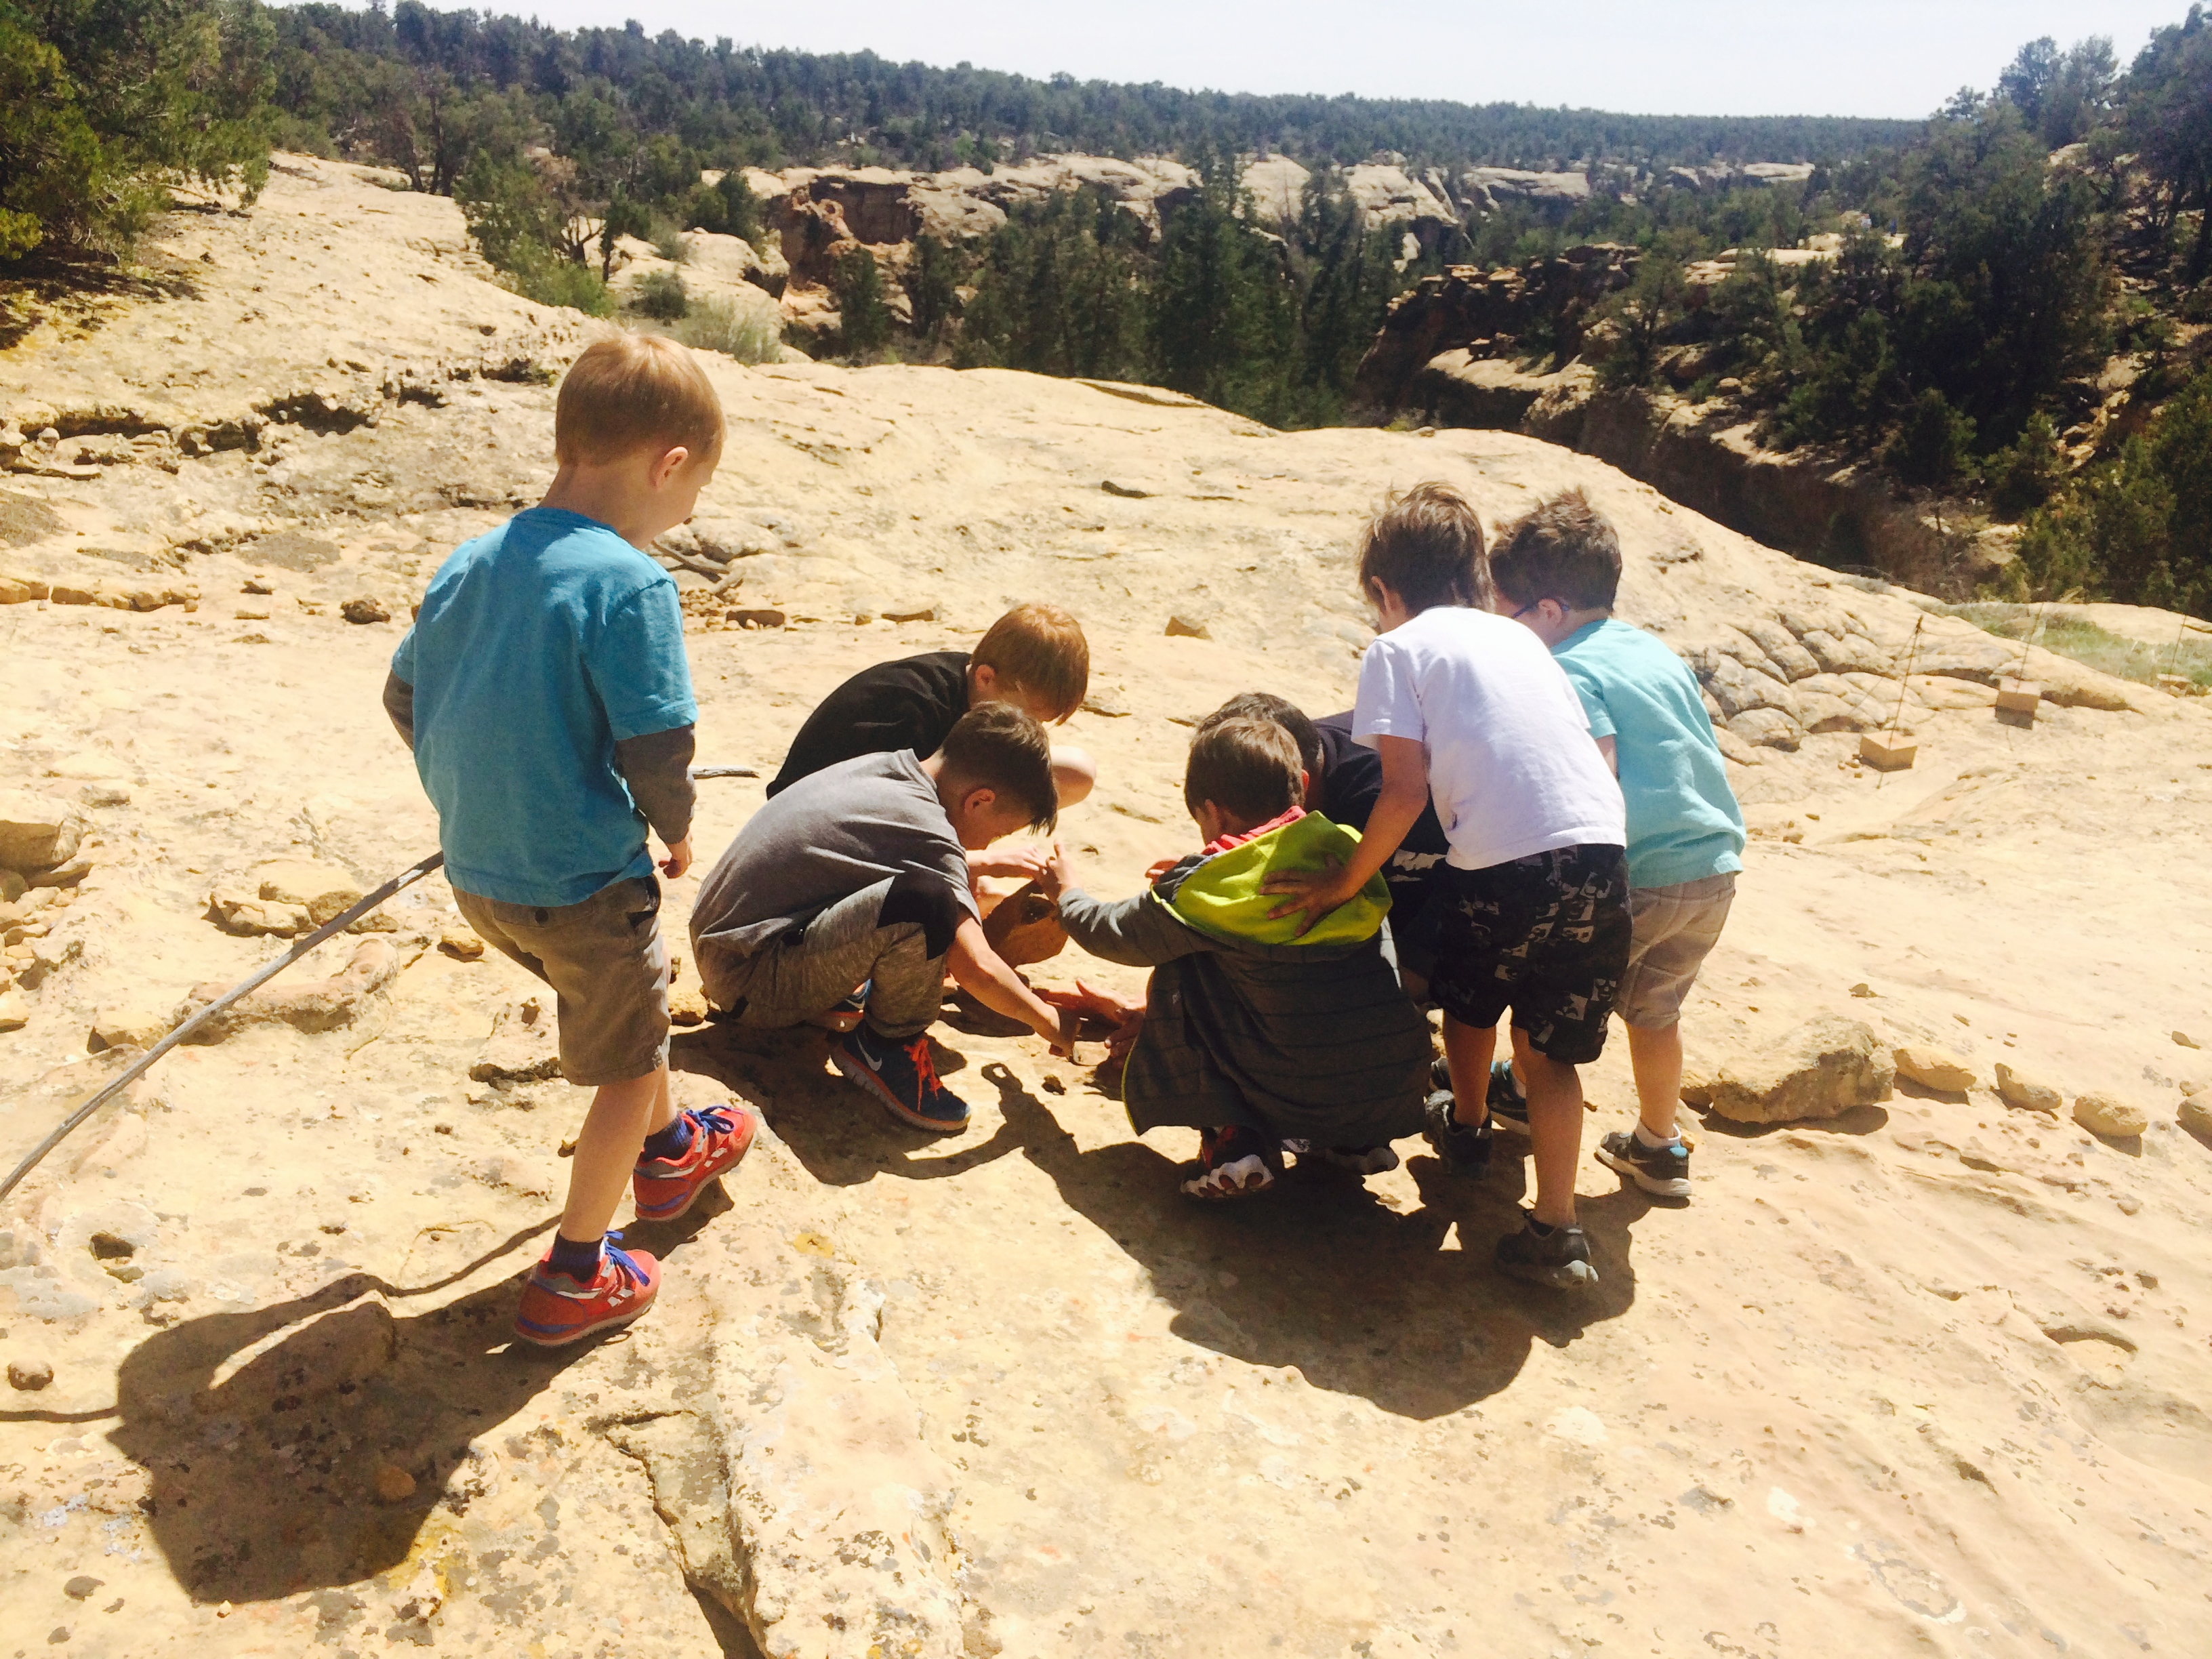 Alan Dayton with his sons and those of family friends catch lizards on the rocks near Spruce Tree House, Mesa Verde, Colorado.  April 2015 | Photo by Kat Dayton, St. George News